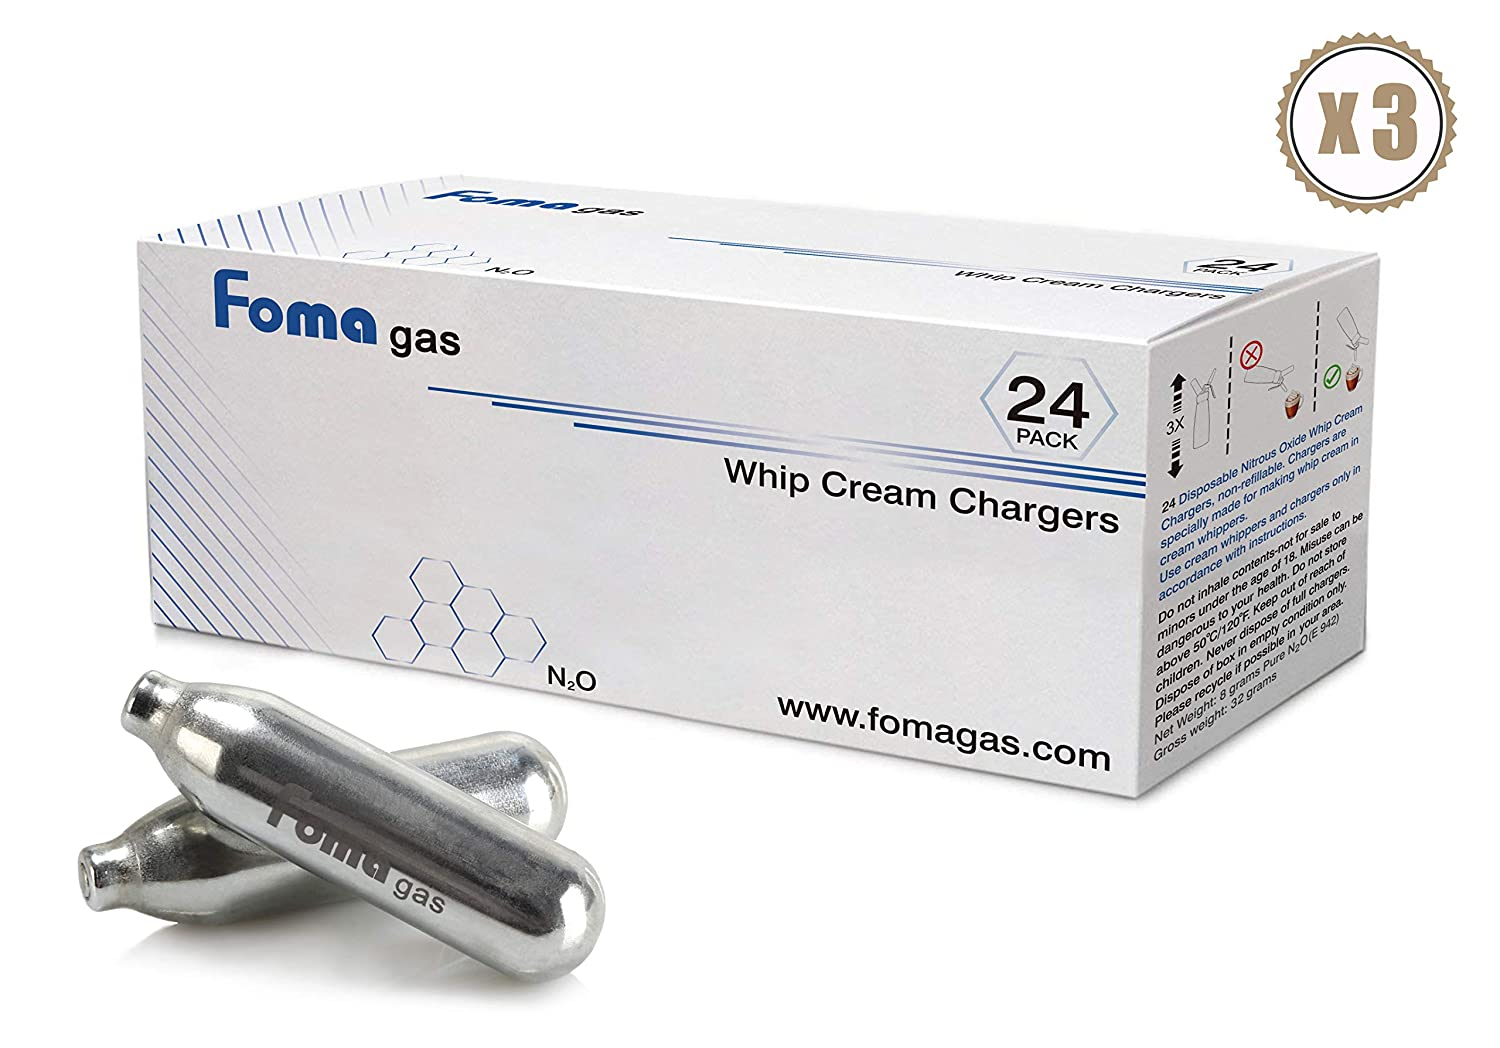 Foma Gas Pure Food Grade whipped cream chargers N2O Whip Cream Chargers (72 packs)